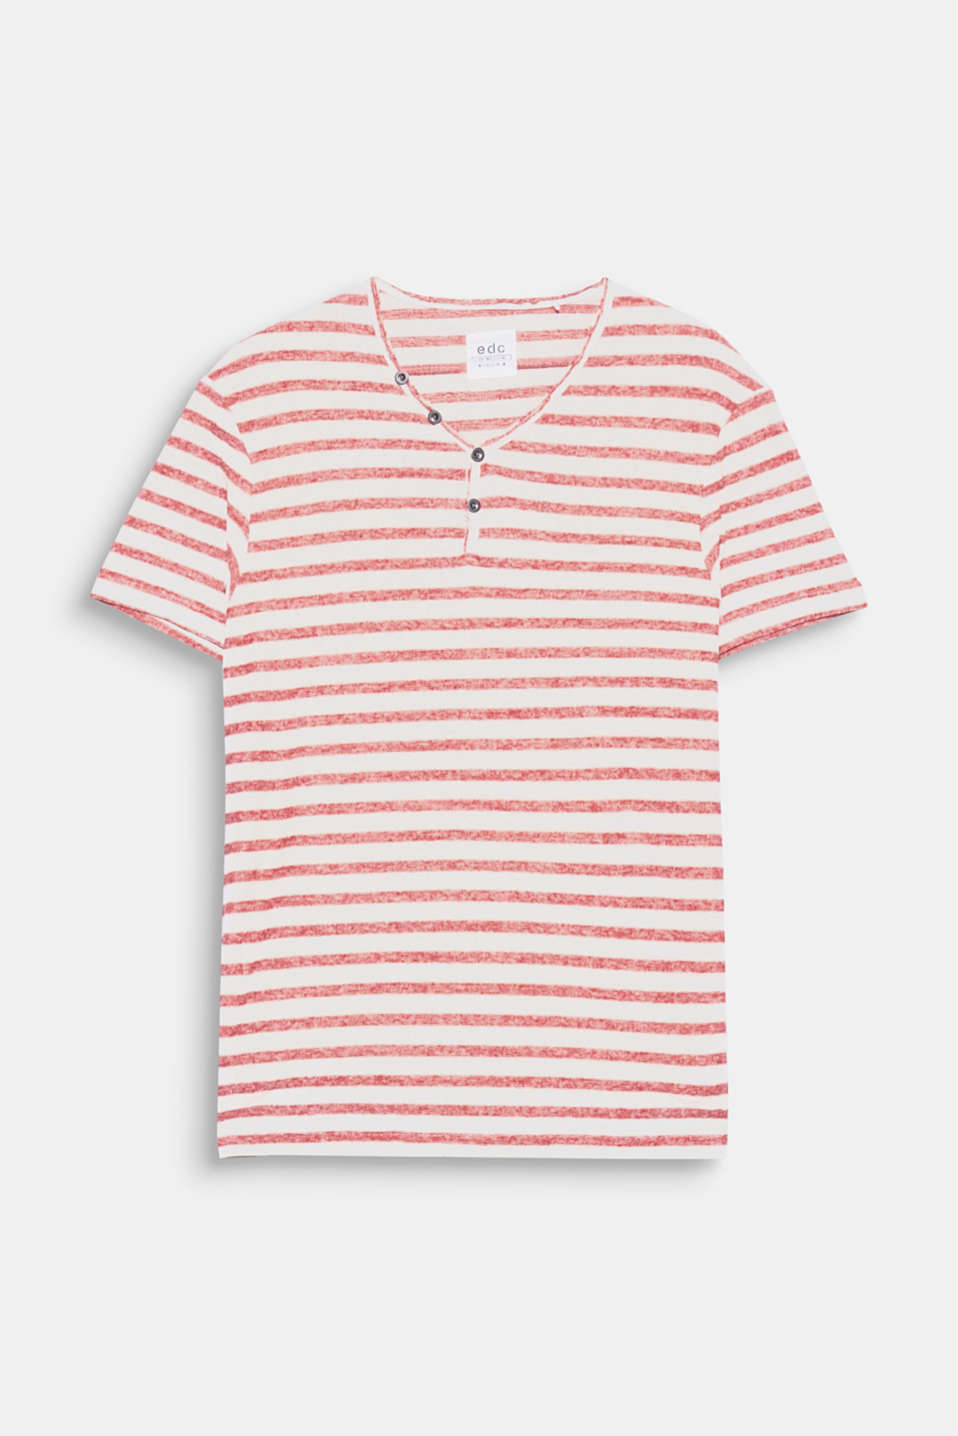 This melange Henley top in blended cotton with distinctive stripes is a fashion essential begging for wardrobe space